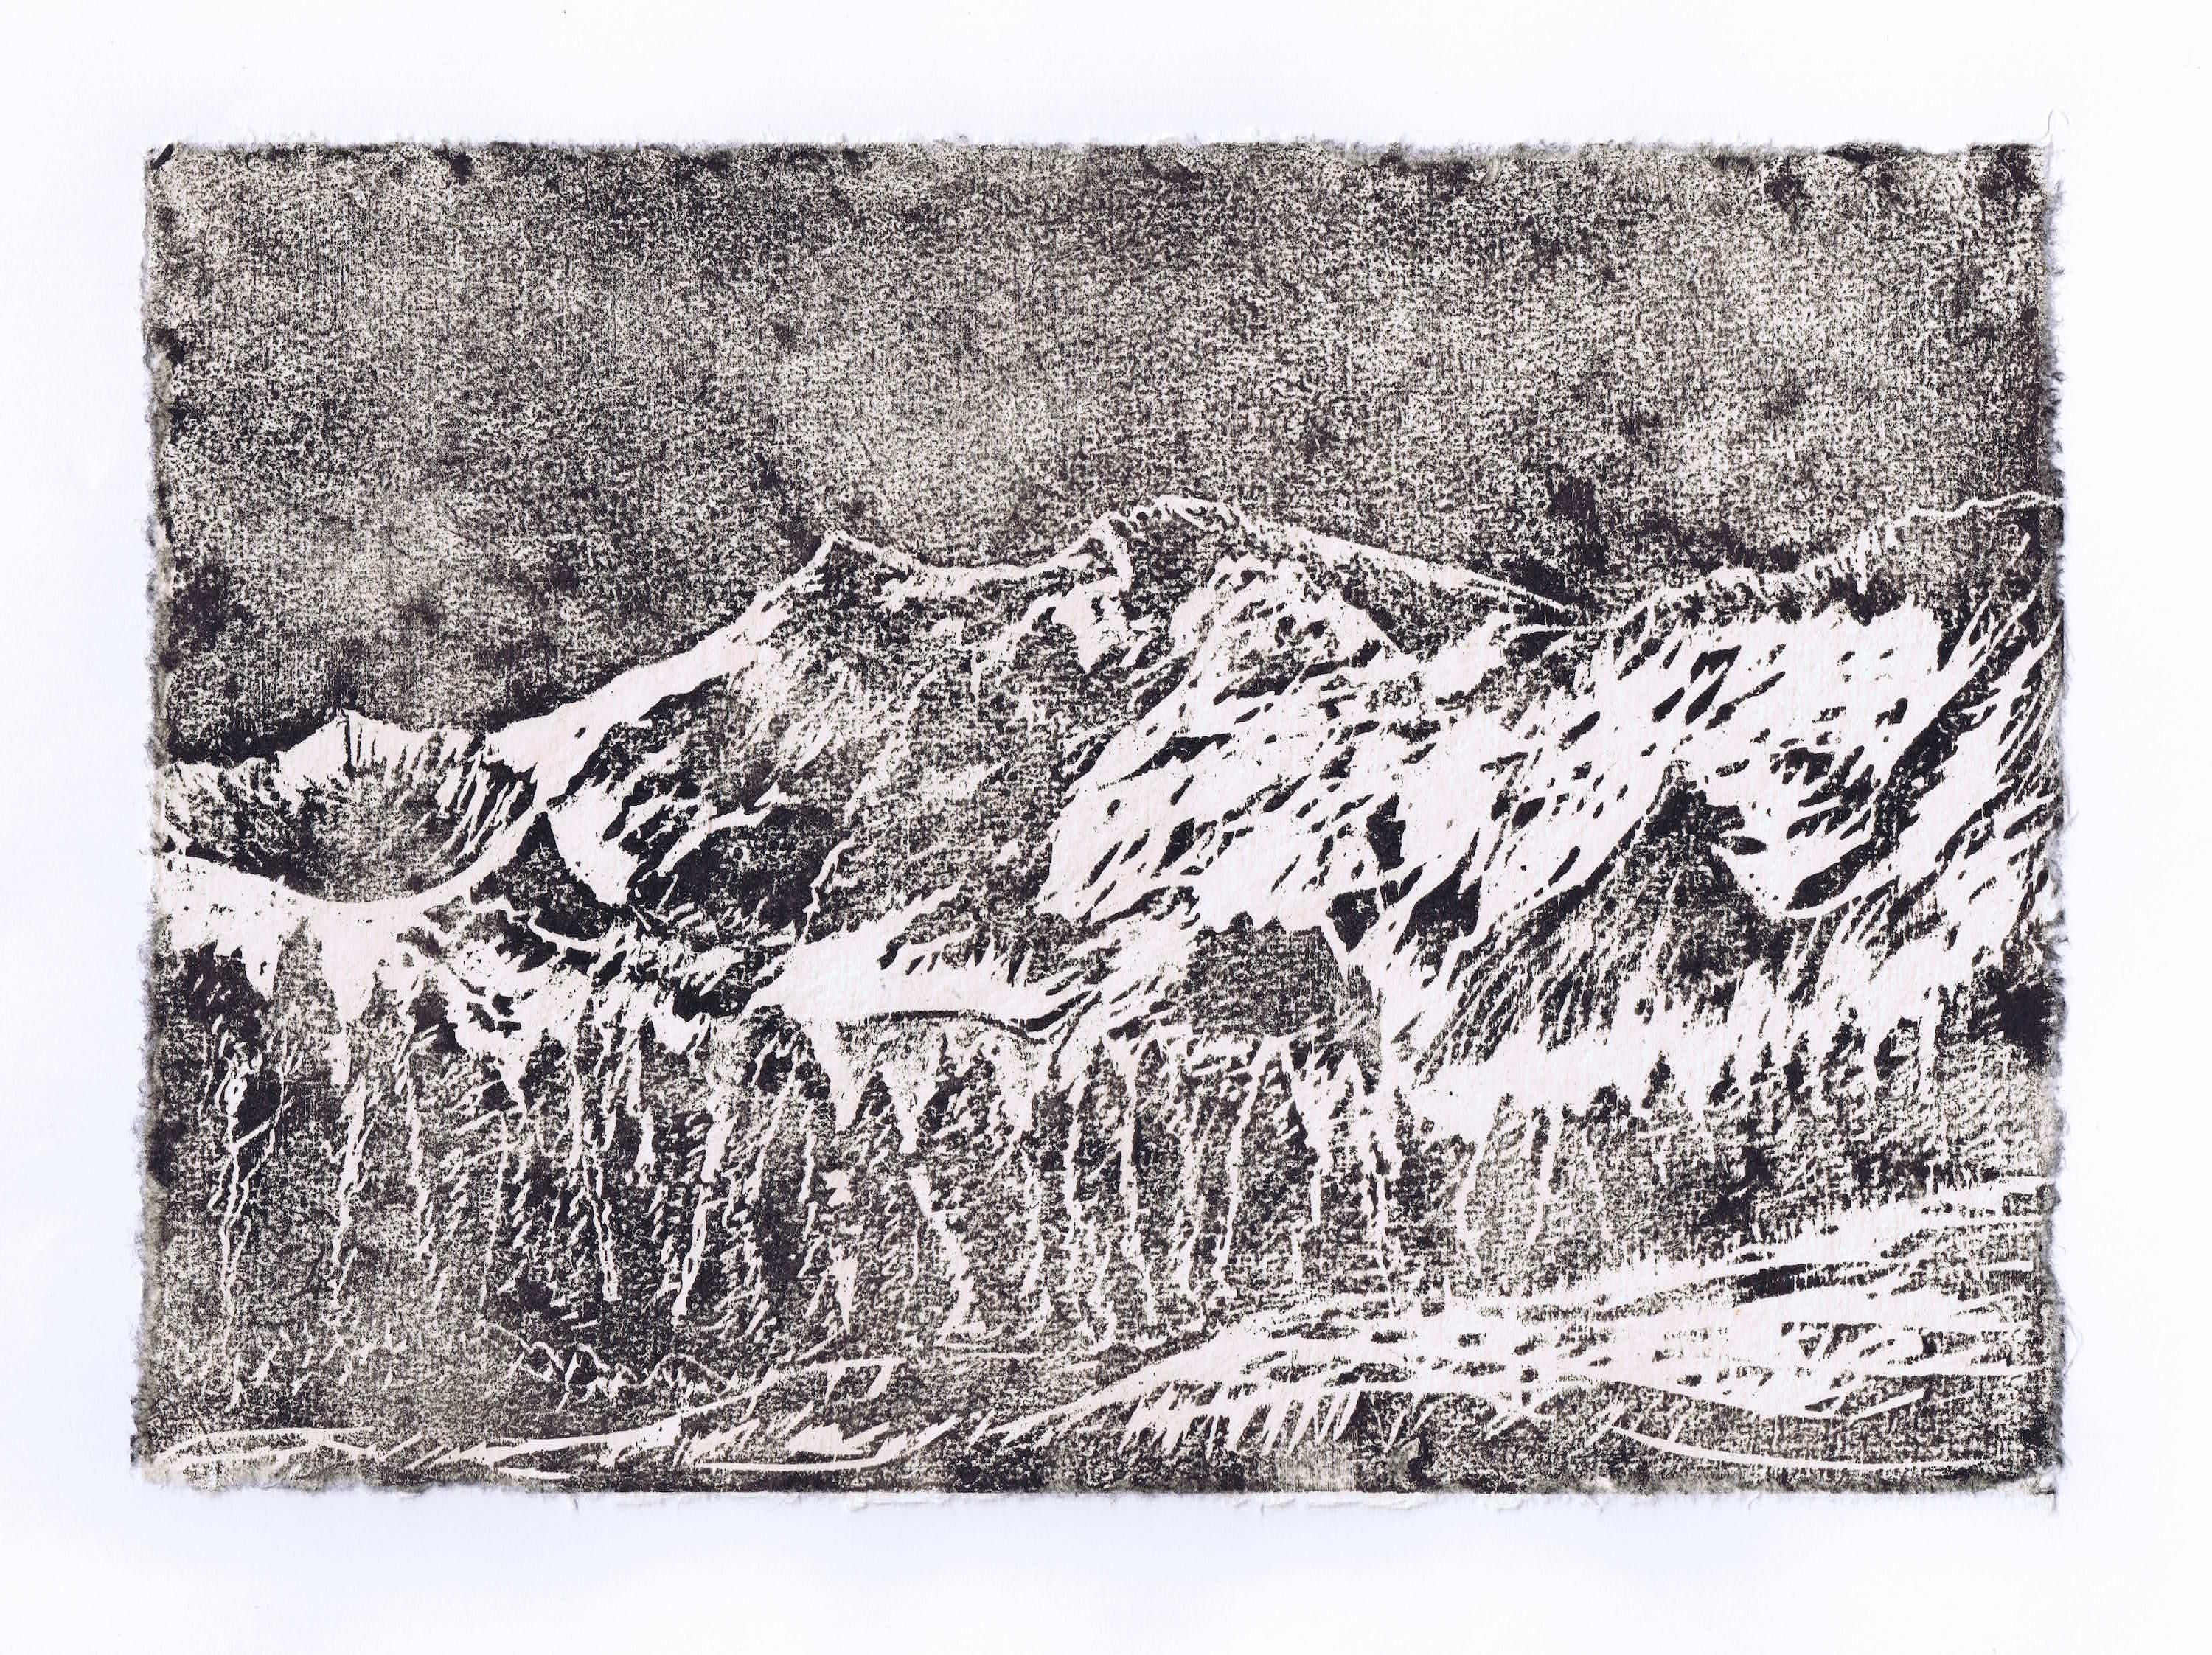 NANGA PARBAT 2016<br>Woodcut on handmade paper 7.9 x 11.8 in.<br>© Kai Luther|VG Bild-Kunst, Bonn 2017